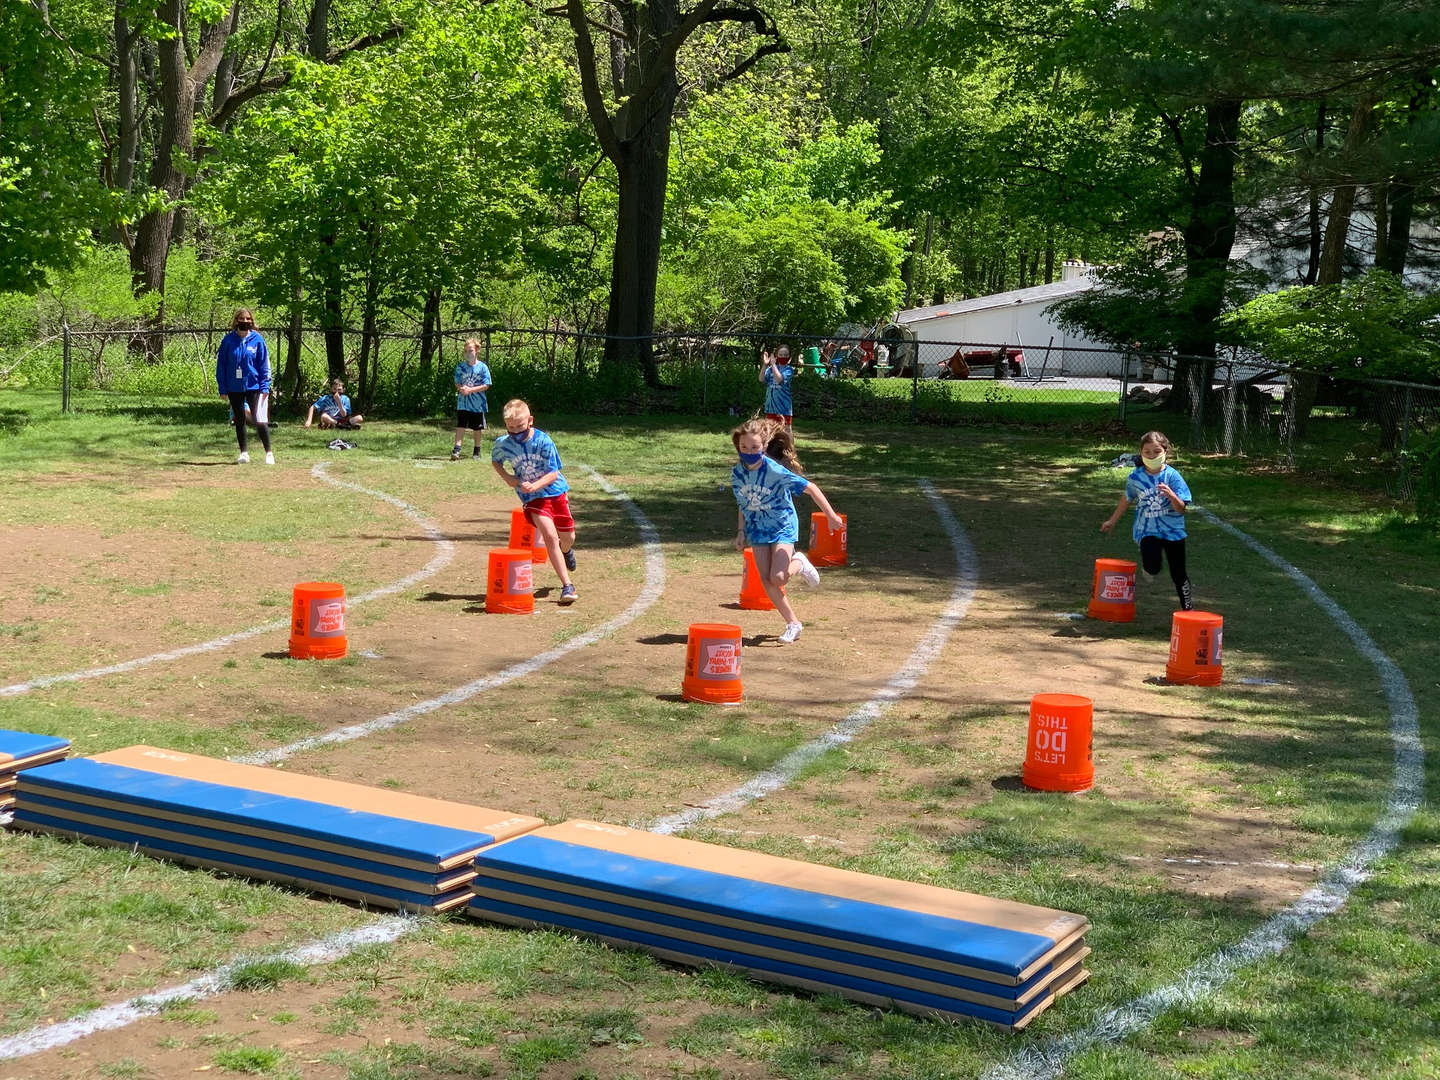 Students participating in Field Day